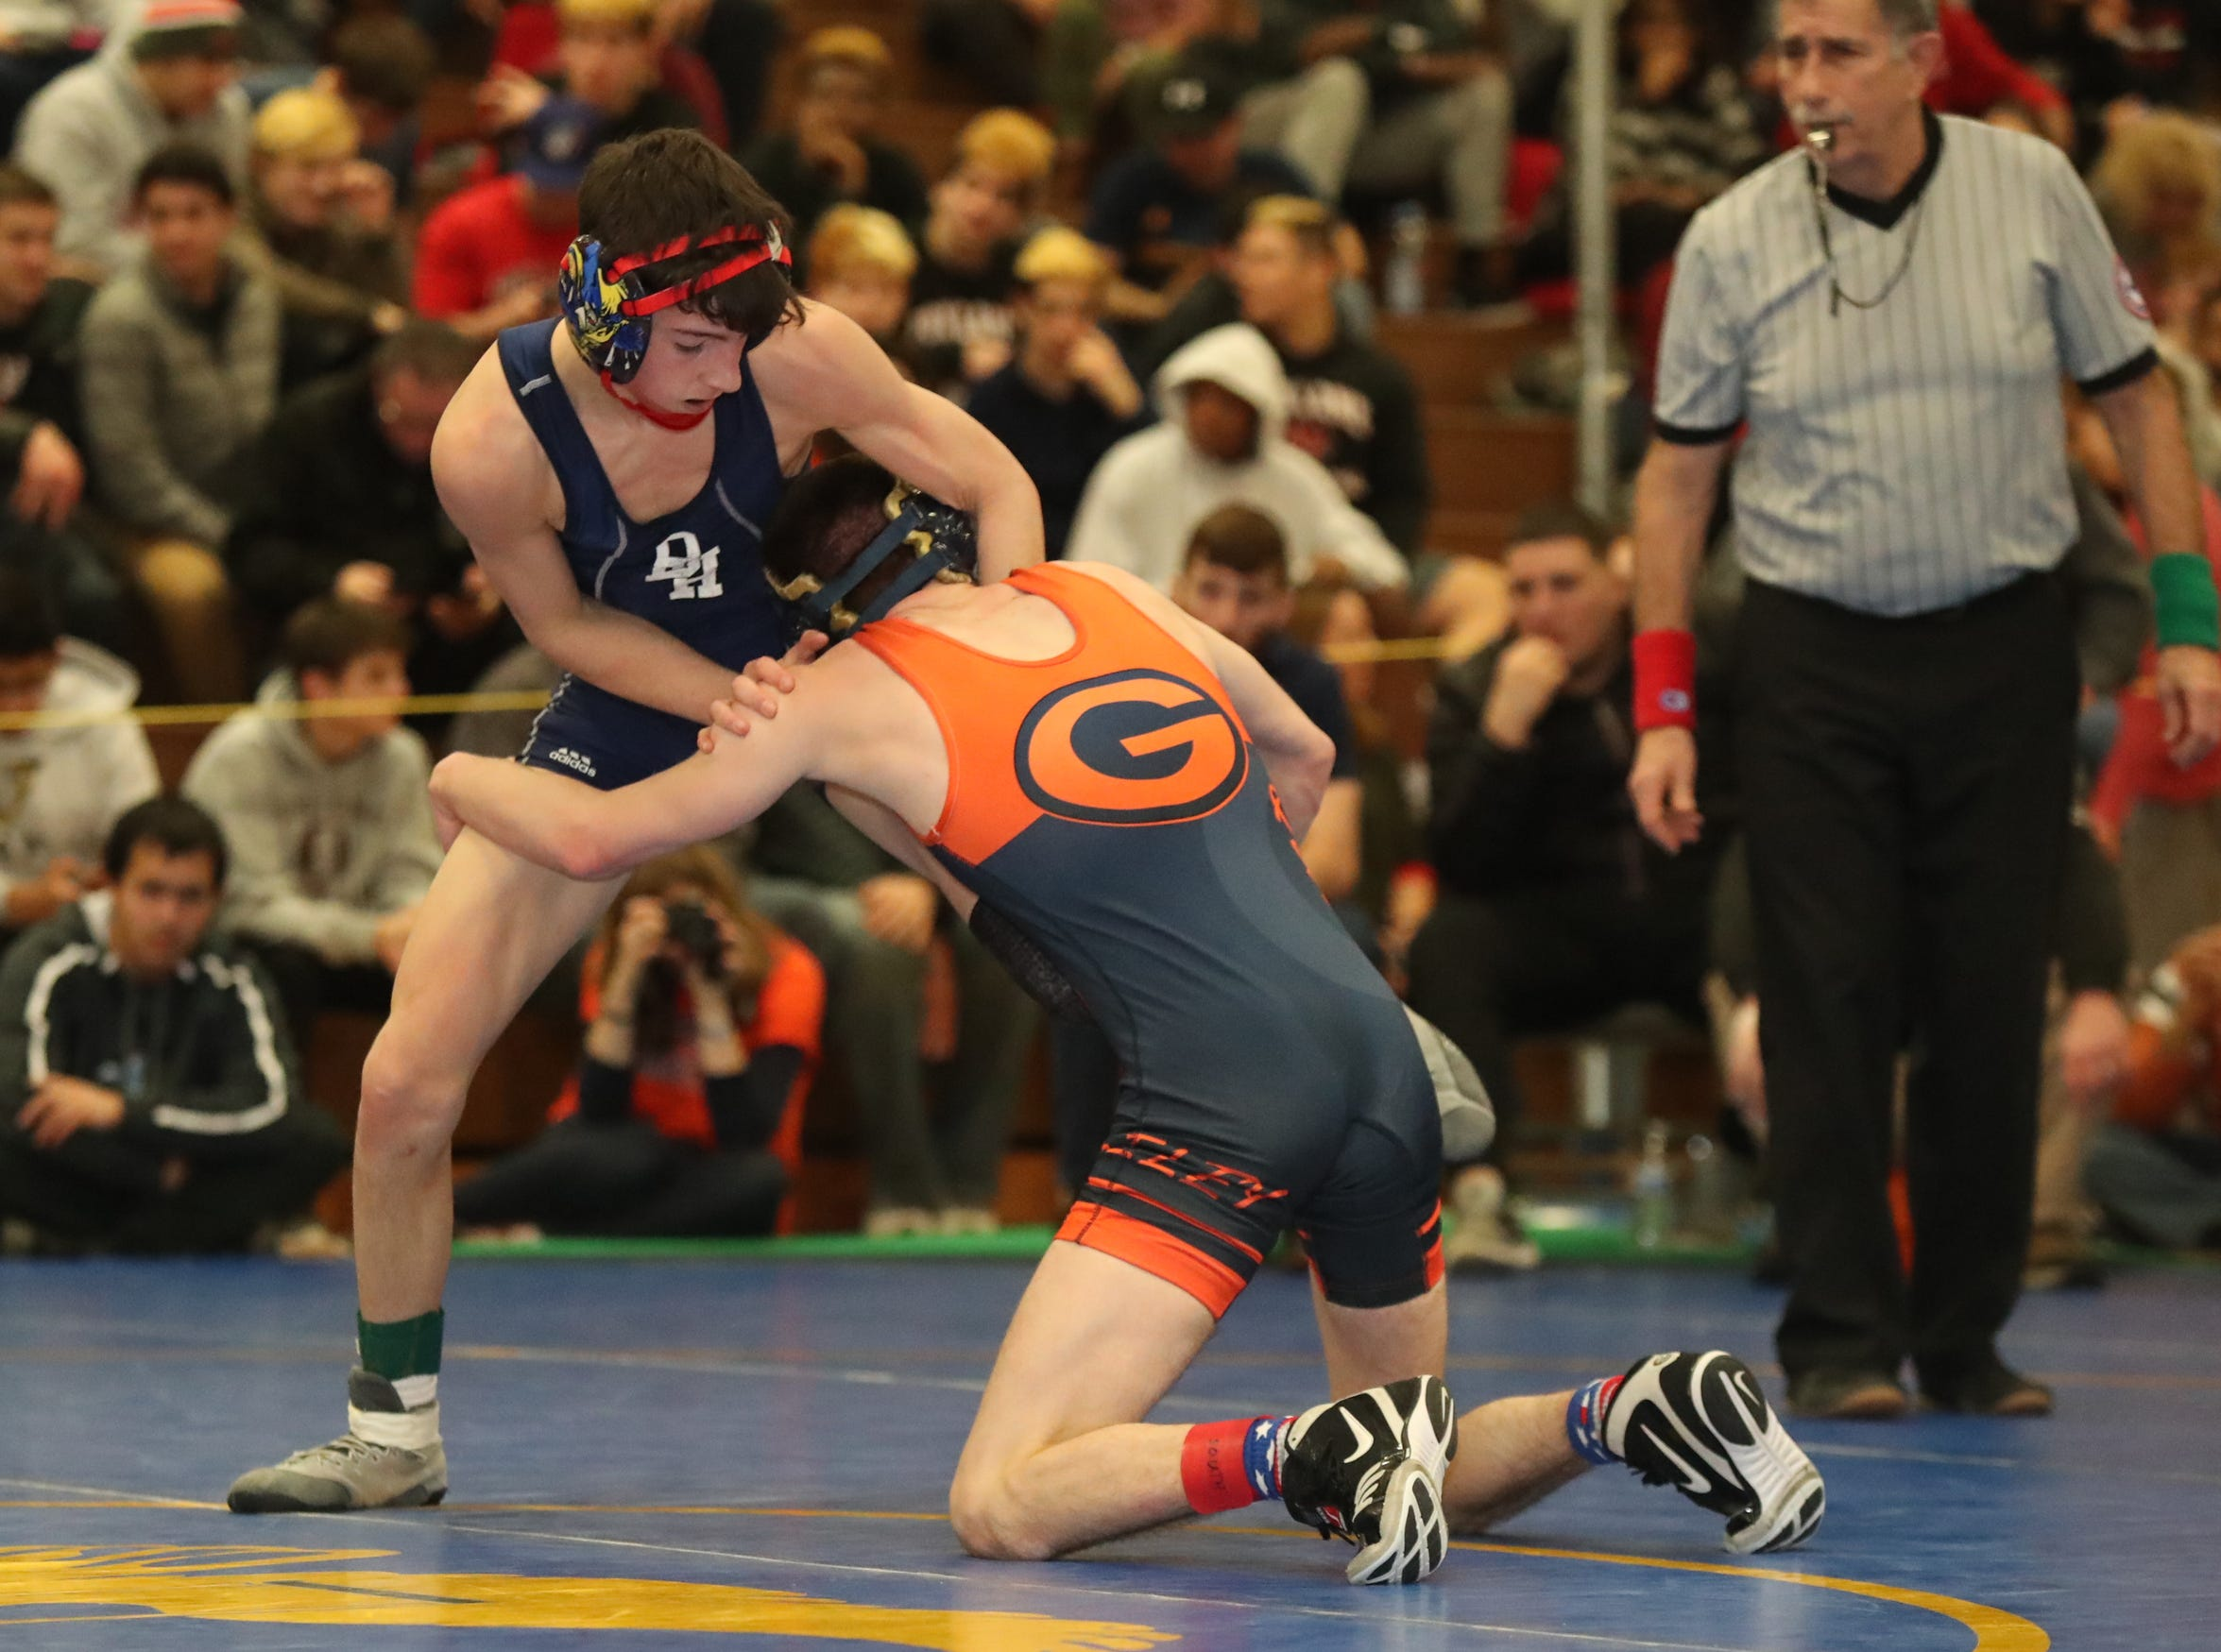 Horace Greeley's Matthew Schreiber defeats Byram Hills' John Fortungo in the 106-pound match of the division I wrestling finals at Clarkstown South High School on Sunday, February 10, 2019.